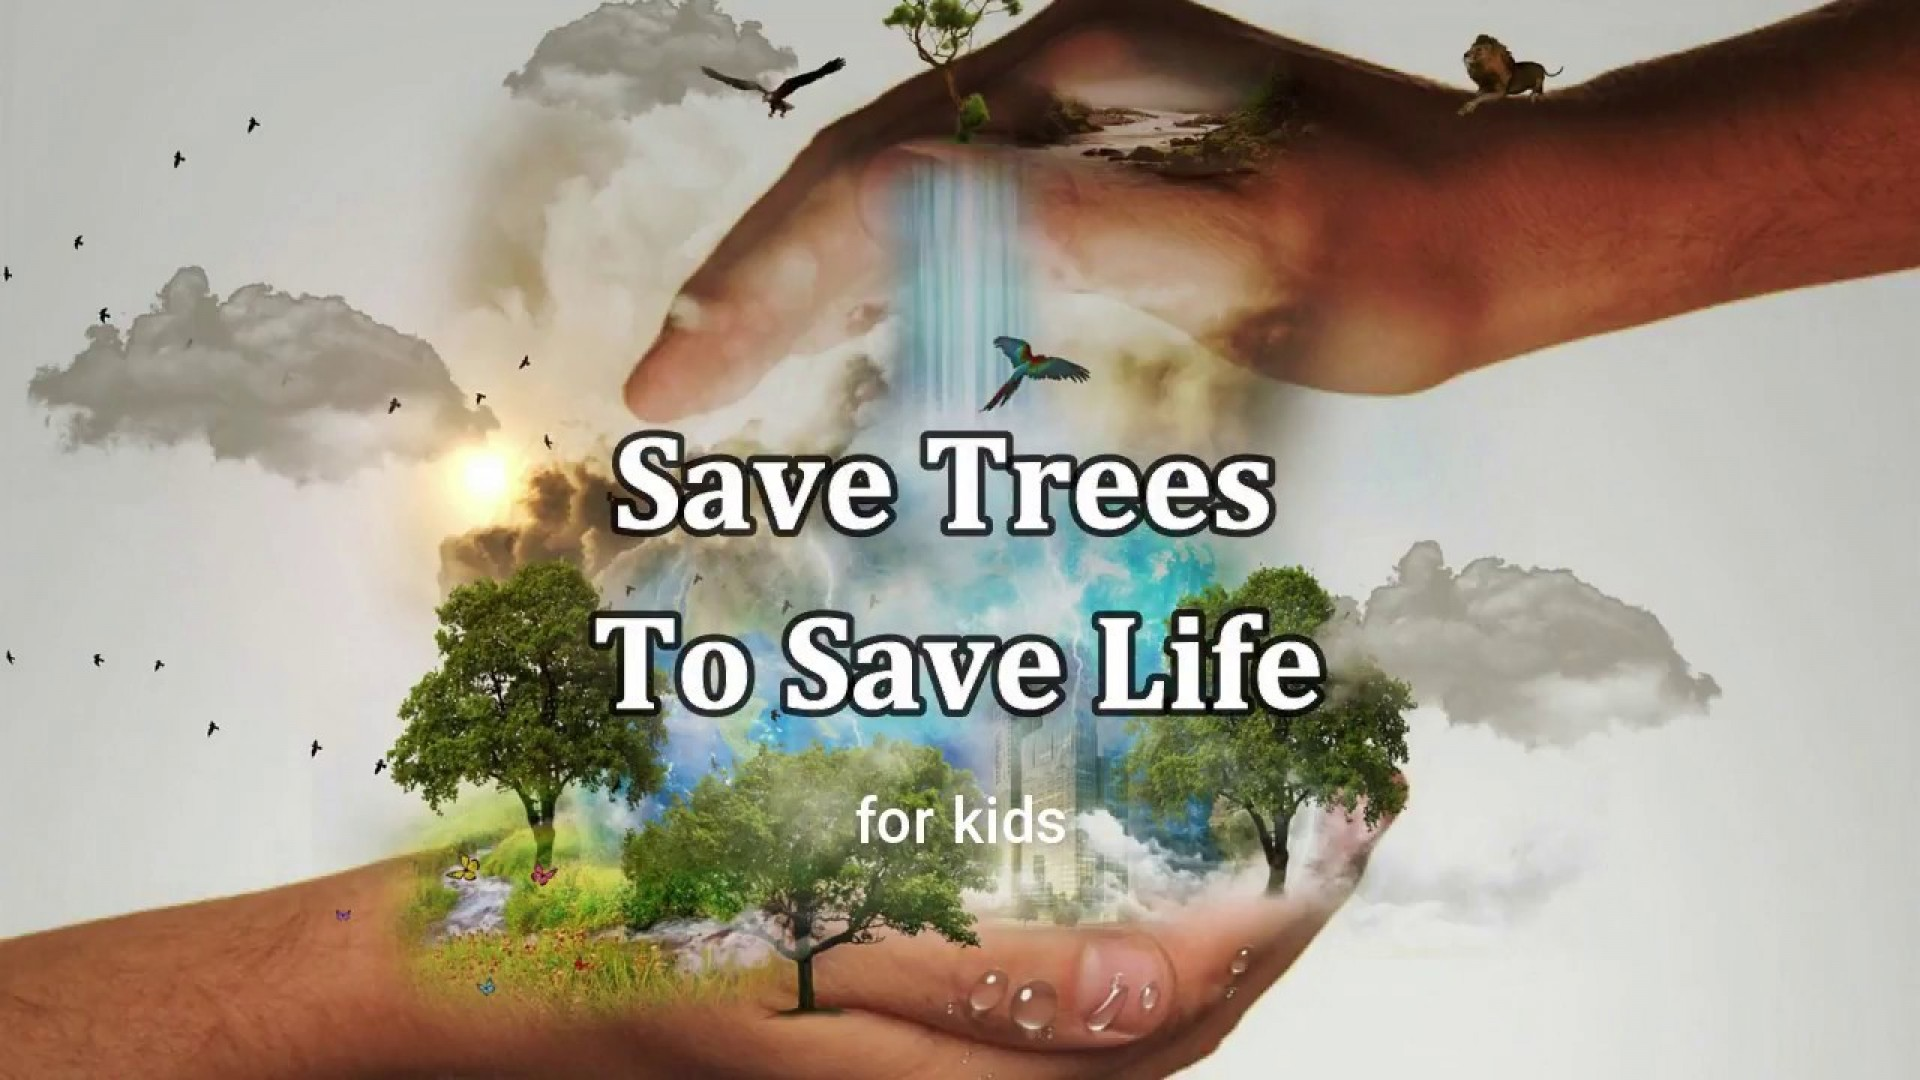 008 How Can We Save Trees Essay Example Marvelous To In Hindi Telugu 1920